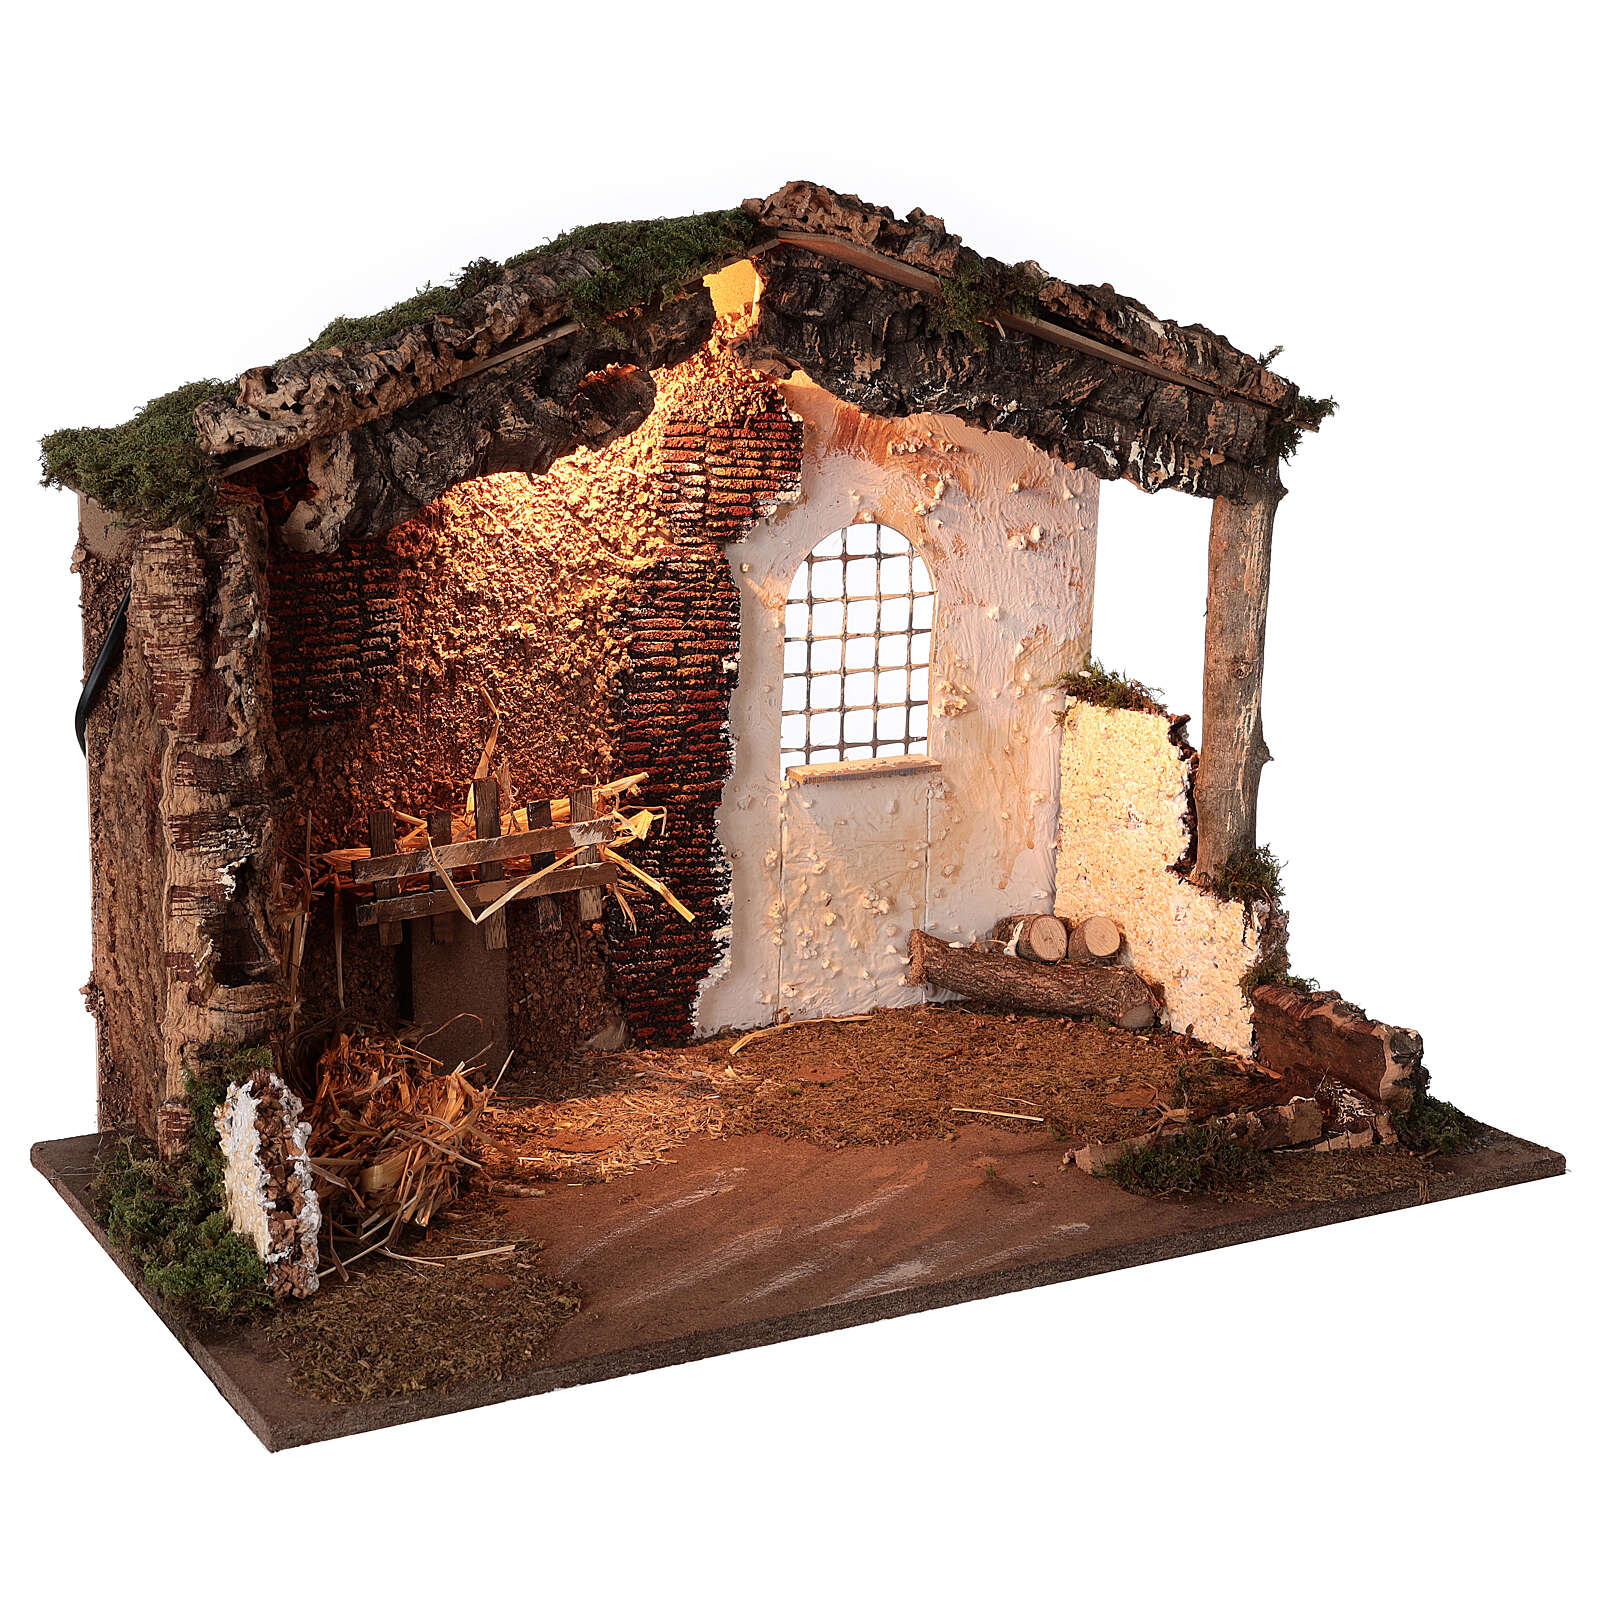 Lighted nativity stable 8-10 cm statues roof moss 40x60x35 cm 4